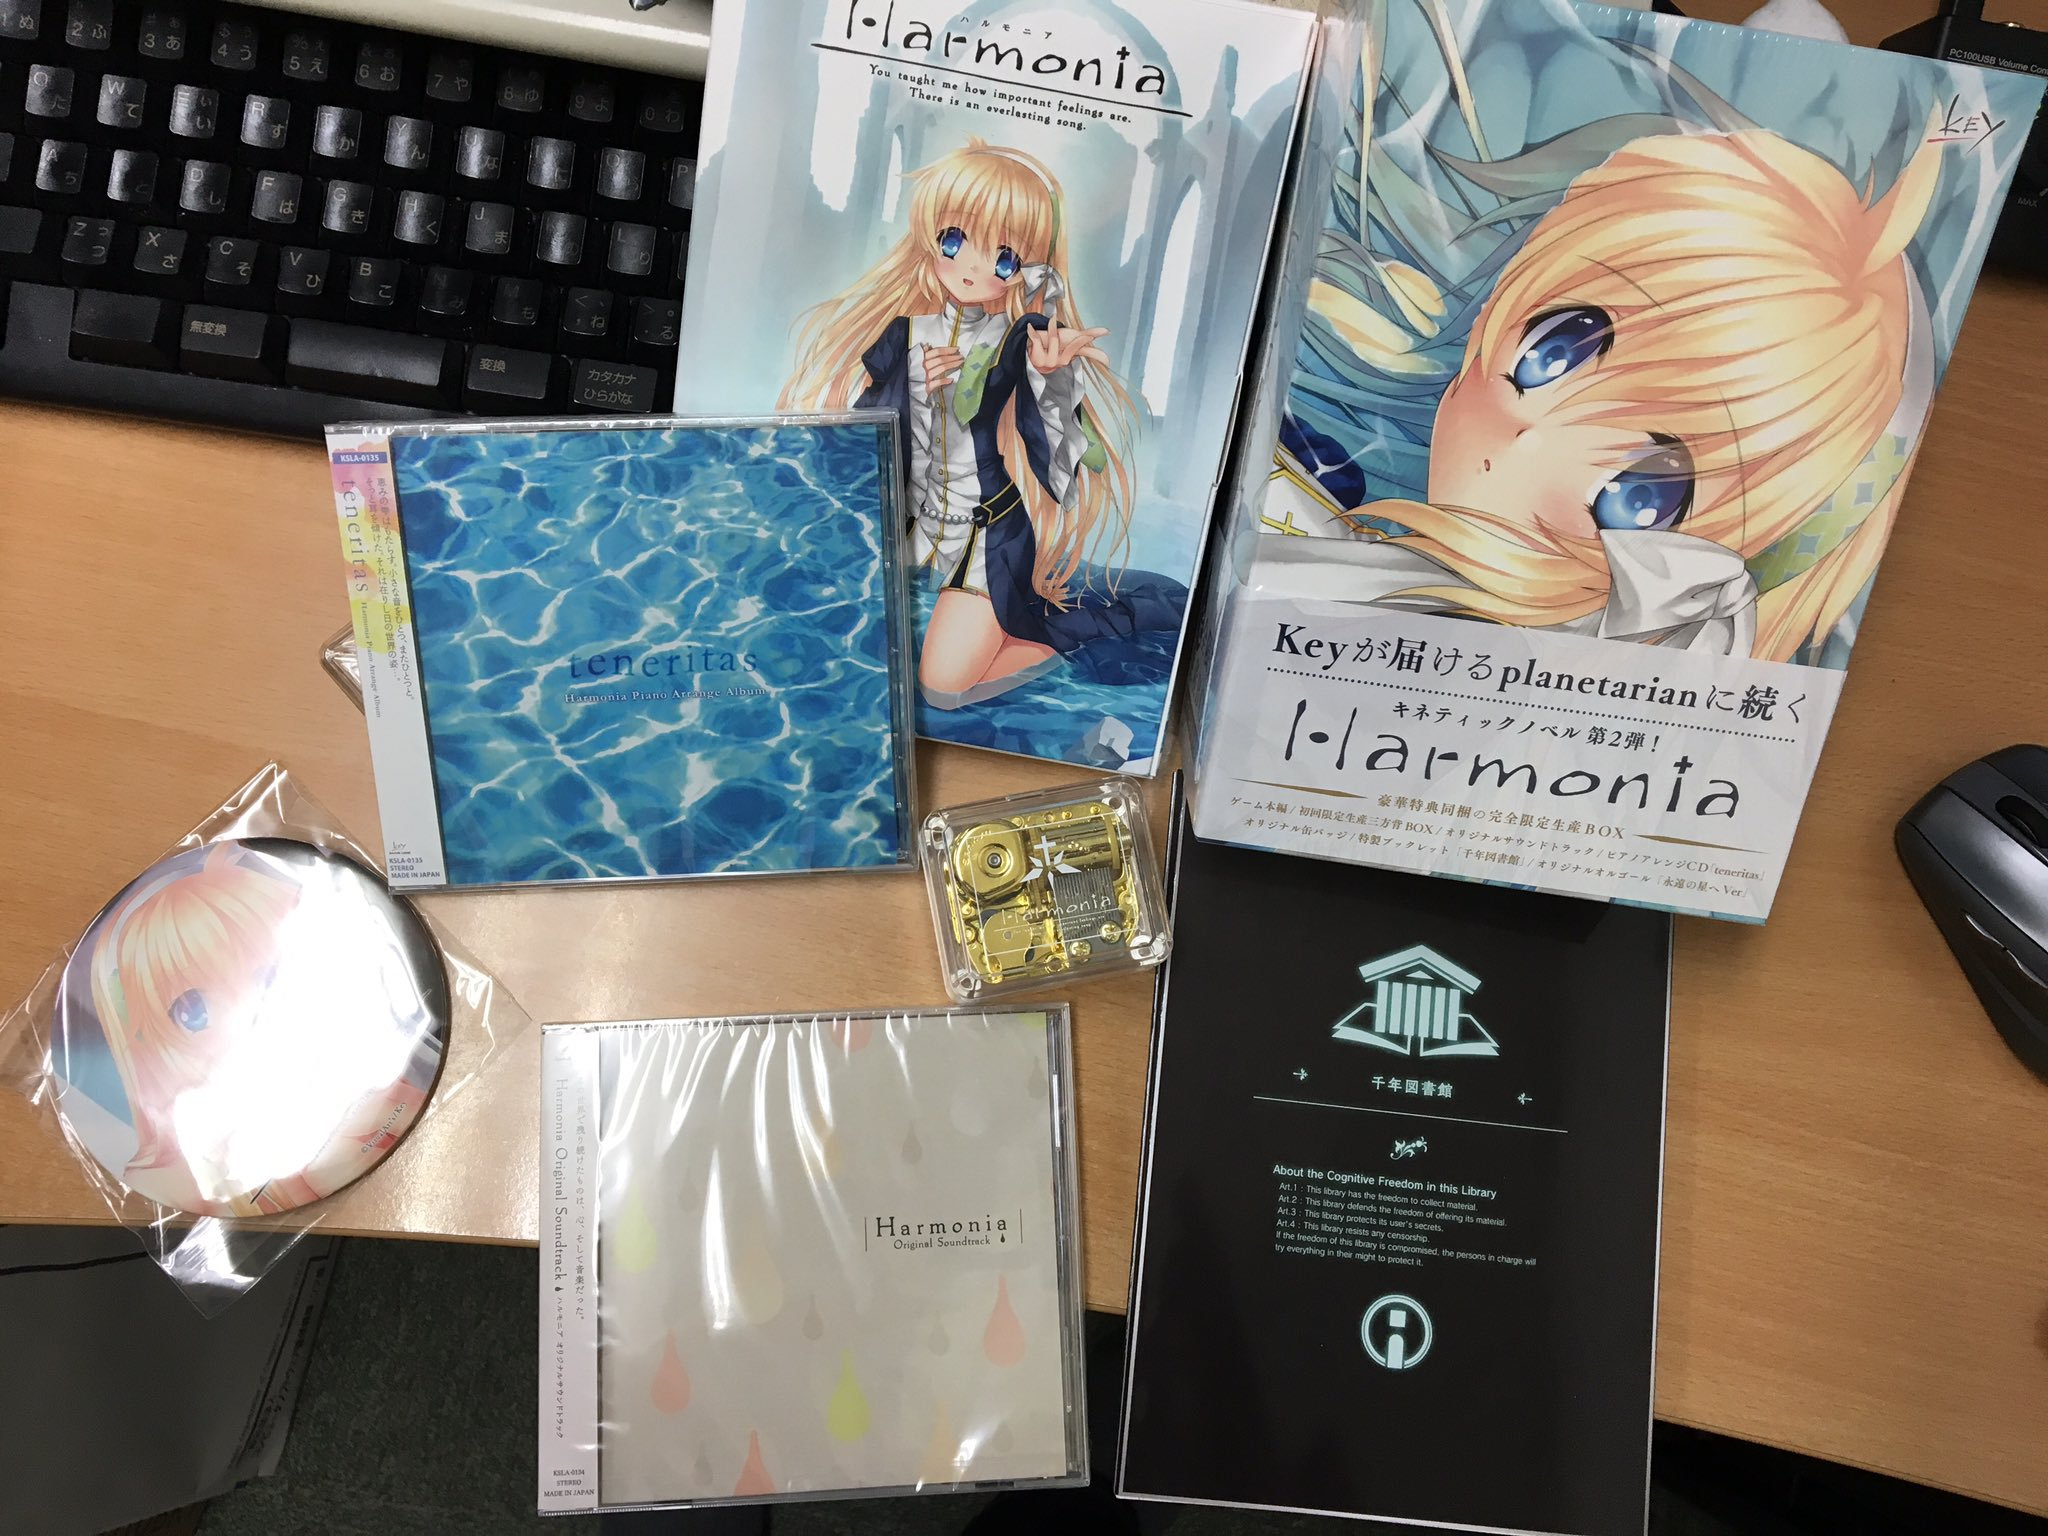 Harmonia Released Commercially